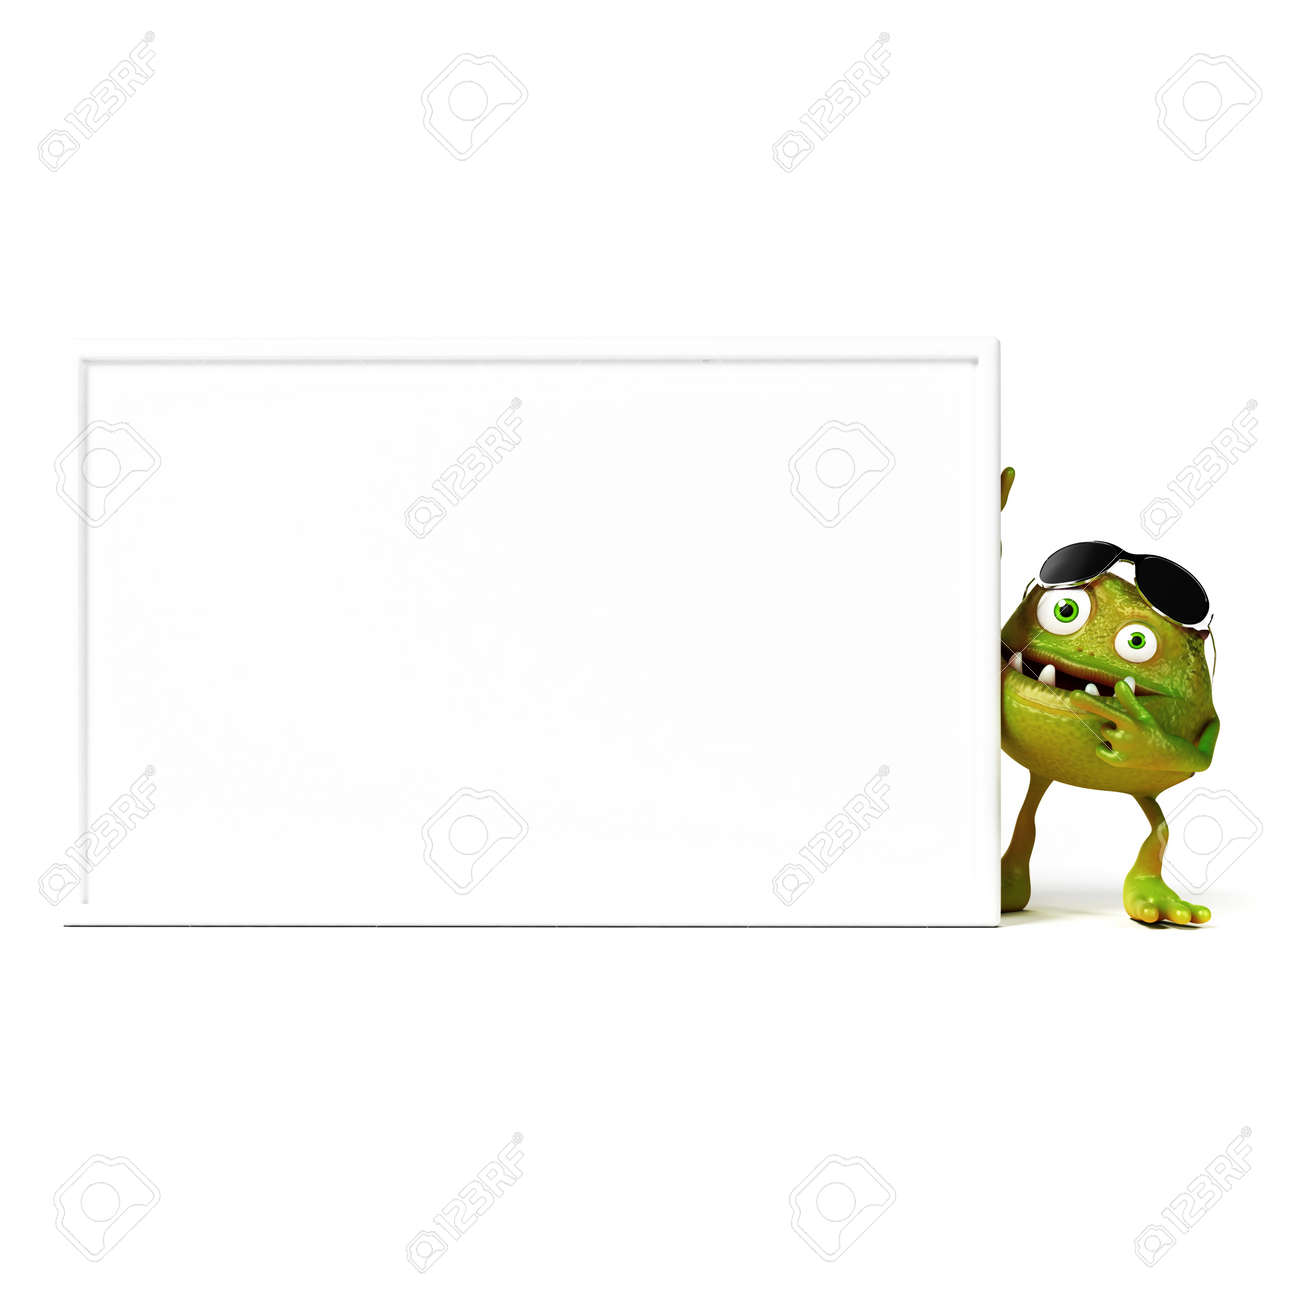 3d rendered illustration of a funny bacteria toon Stock Photo - 18070282